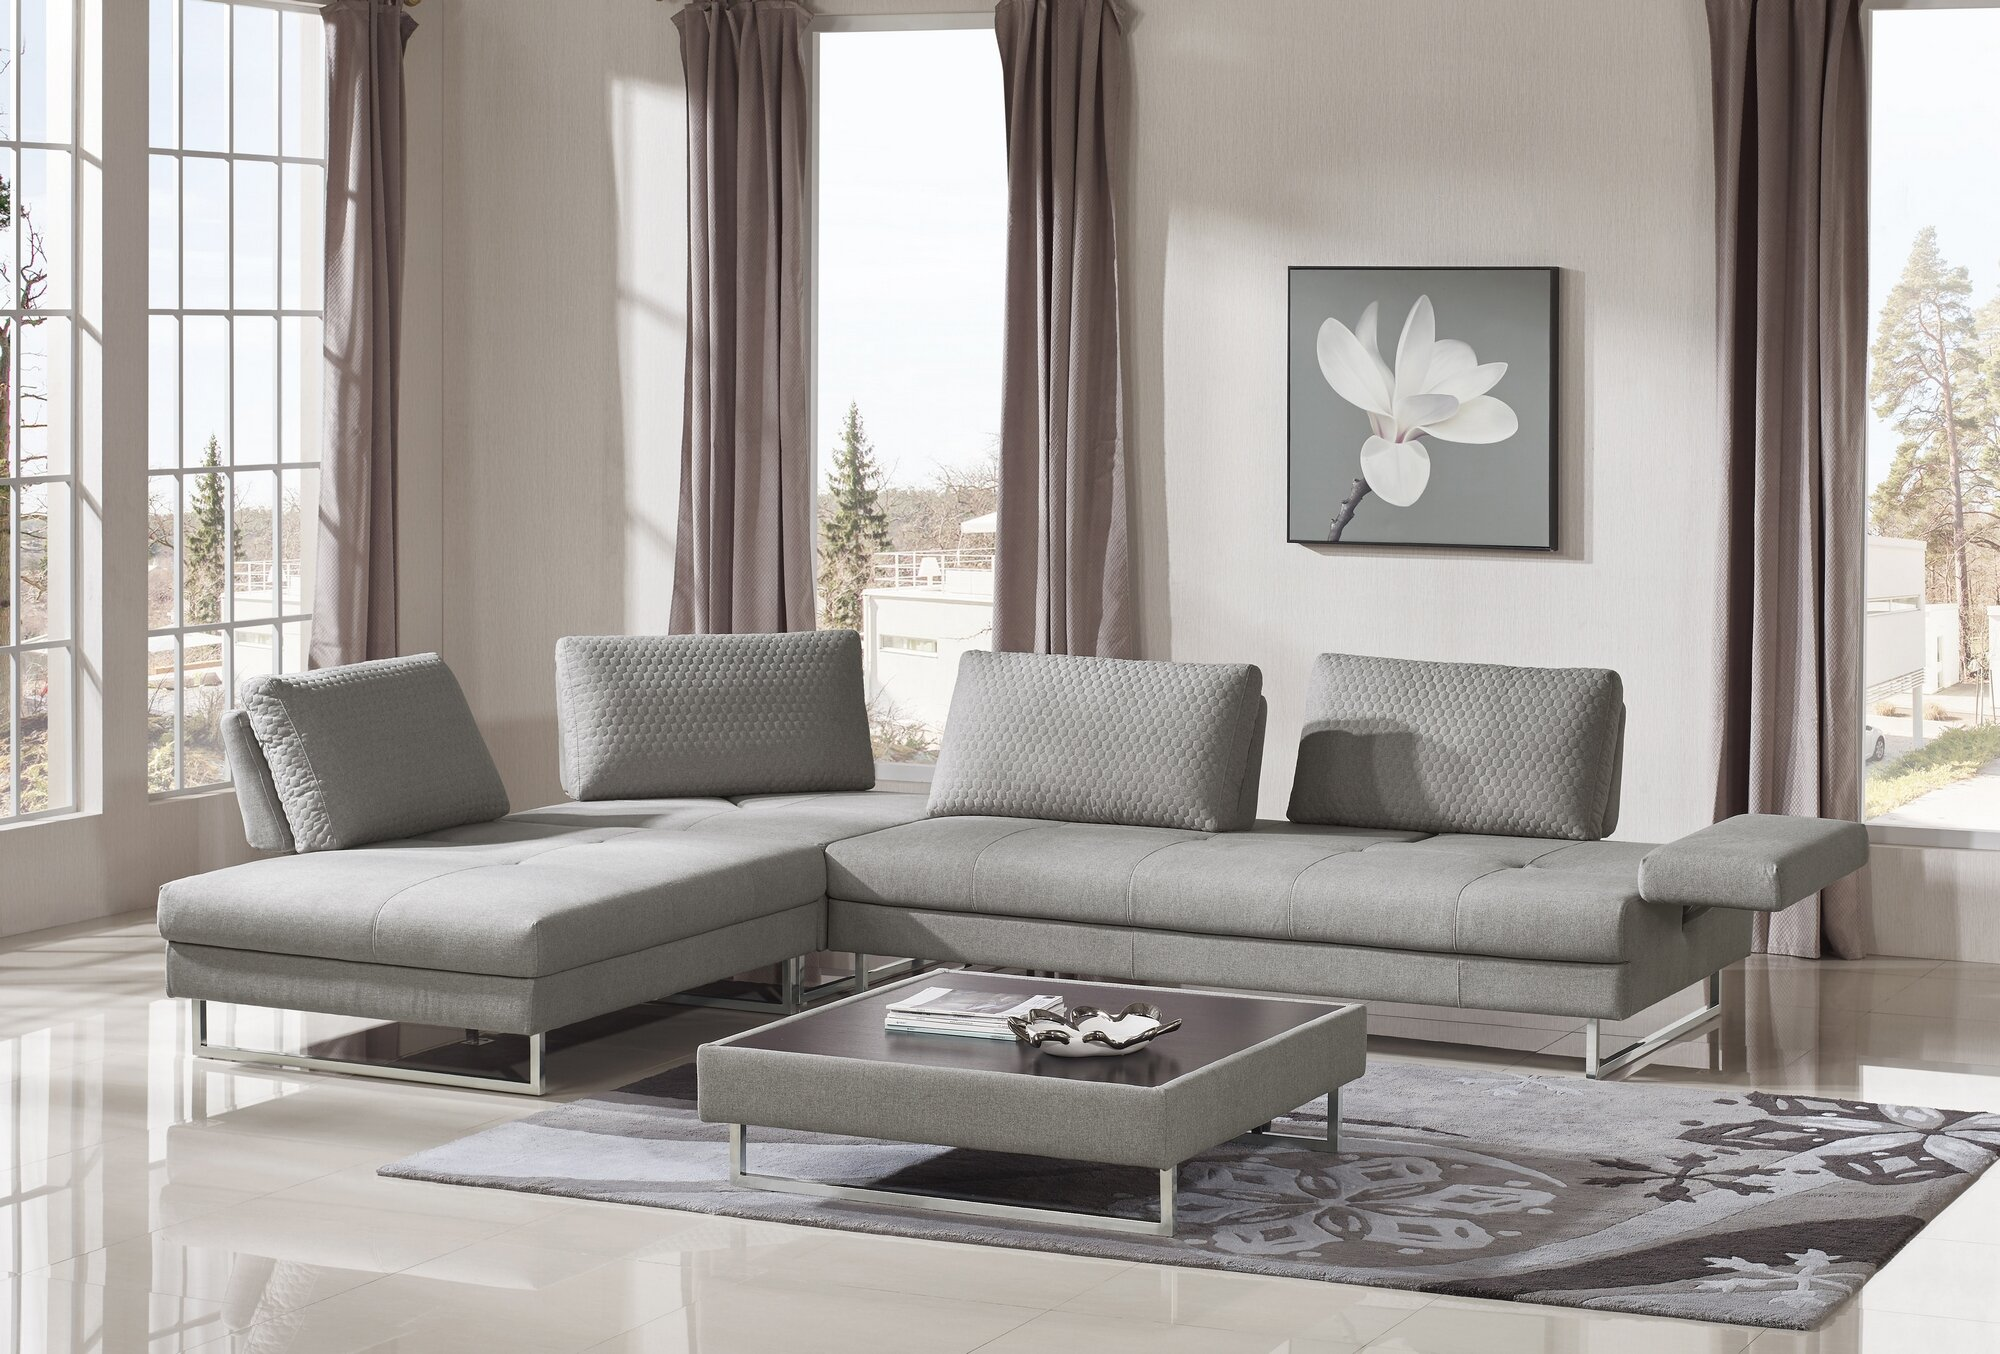 Orren Ellis Wensley Modern Fabric Sectional Sofa 4 Piece Living Room ...